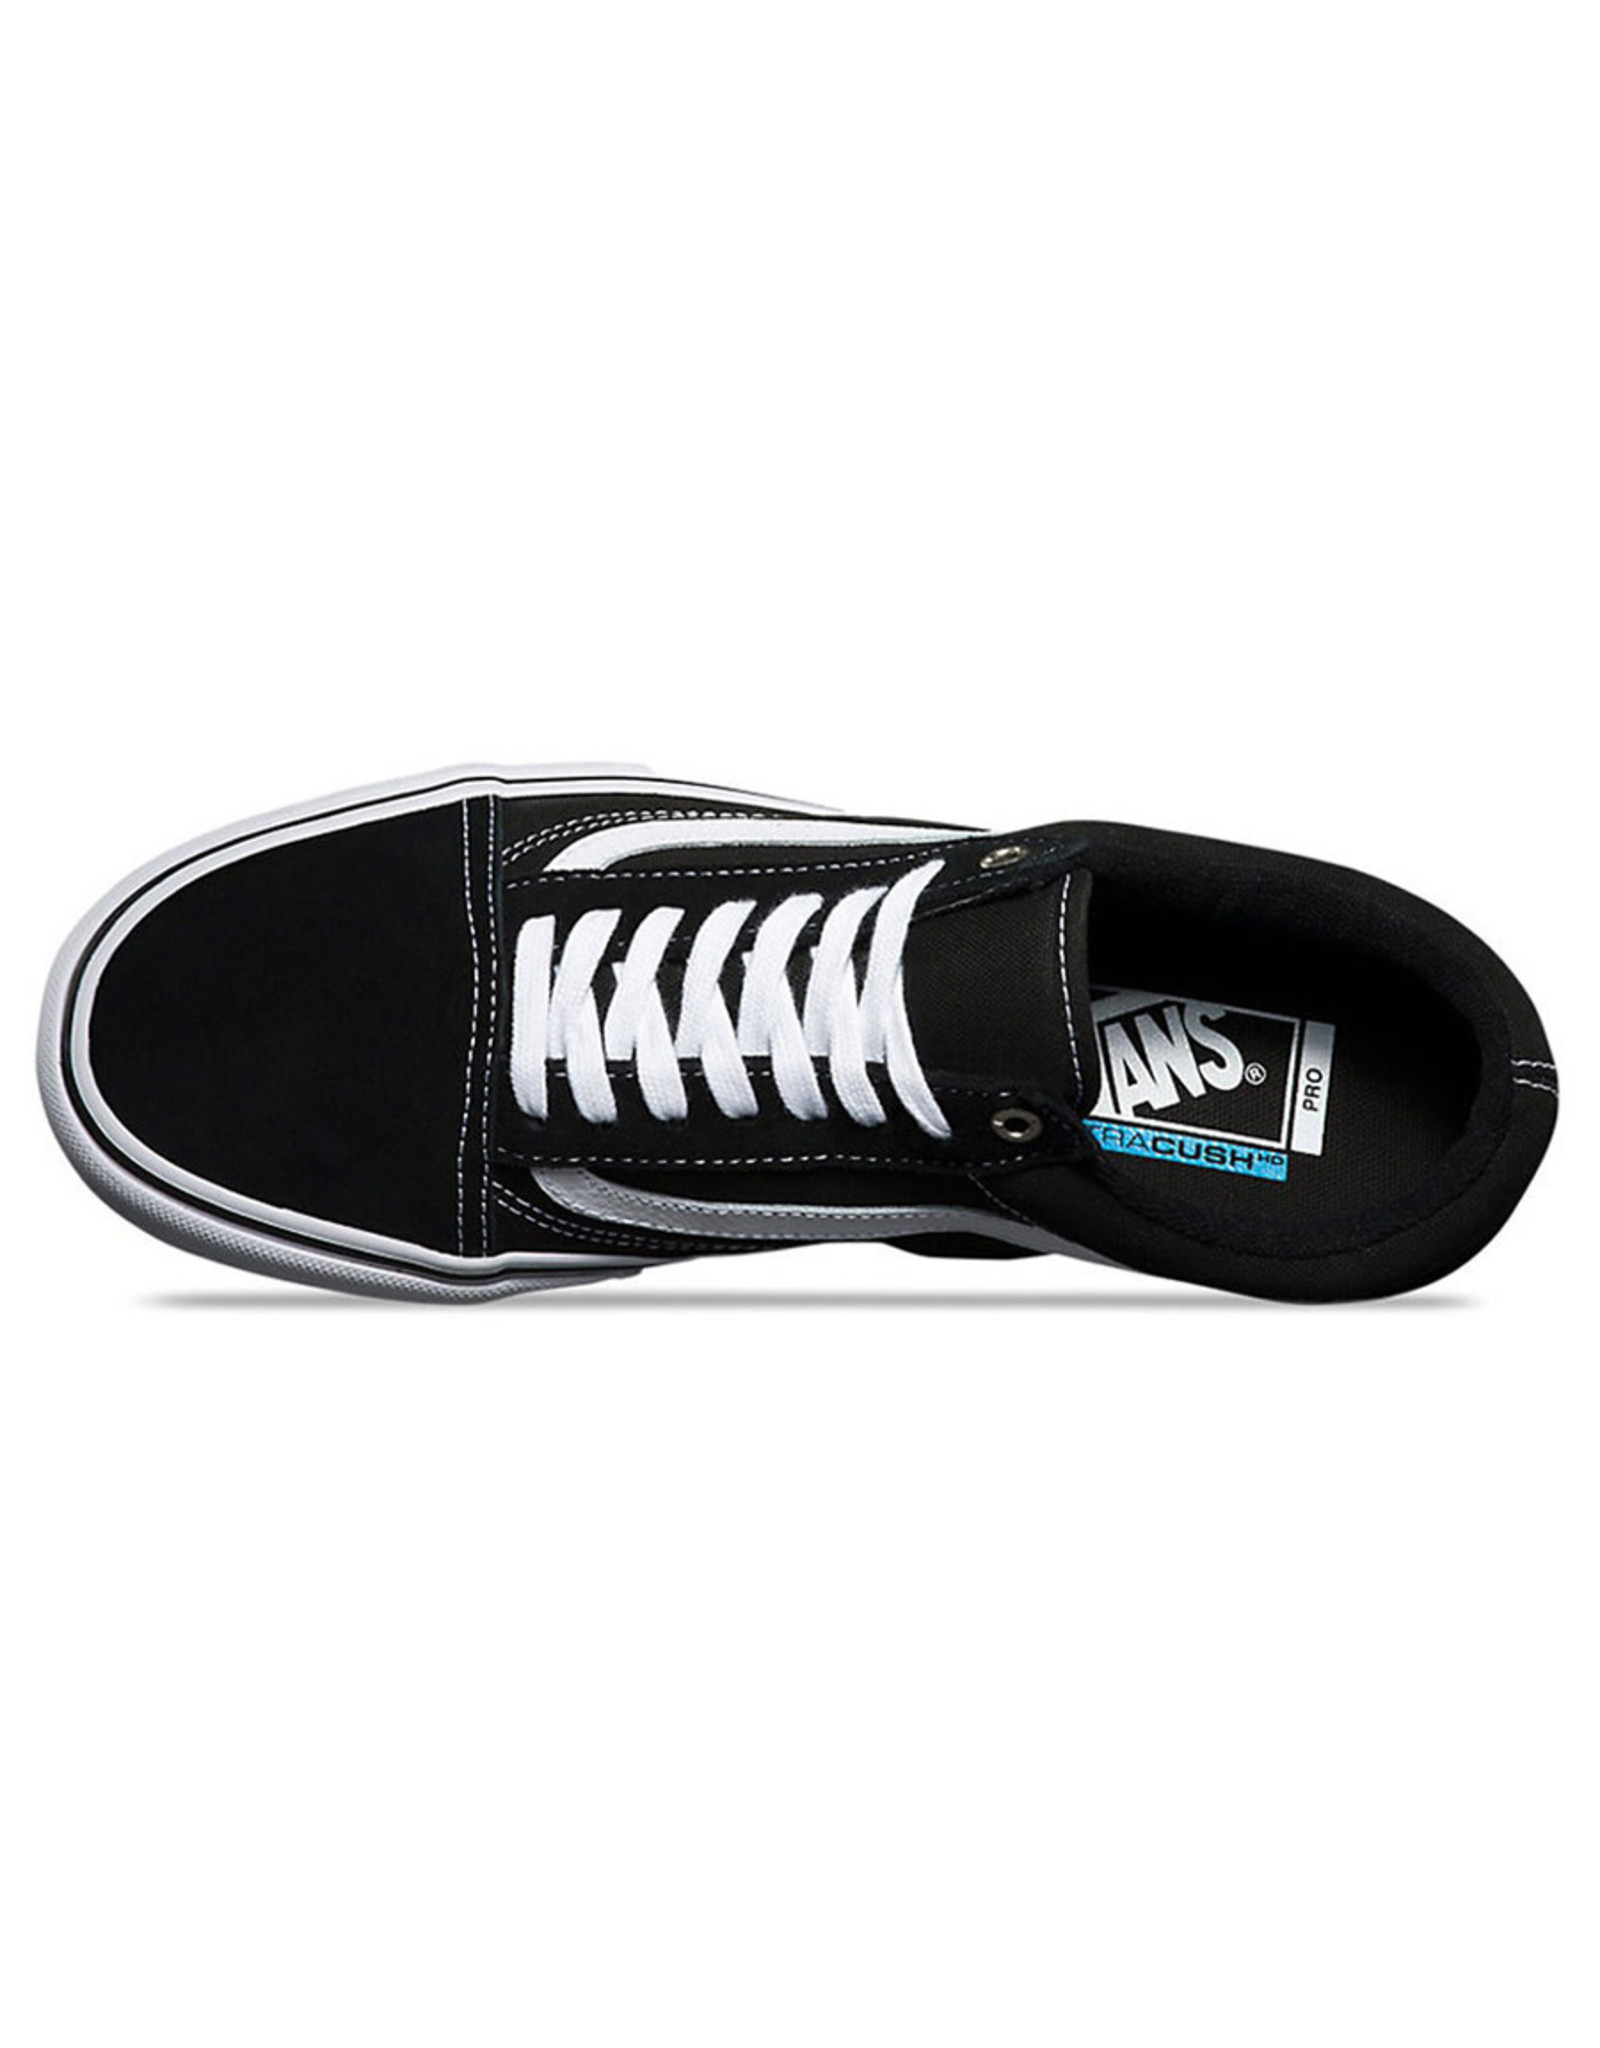 Vans Vans Shoe Pro Old Skool (Black/White)